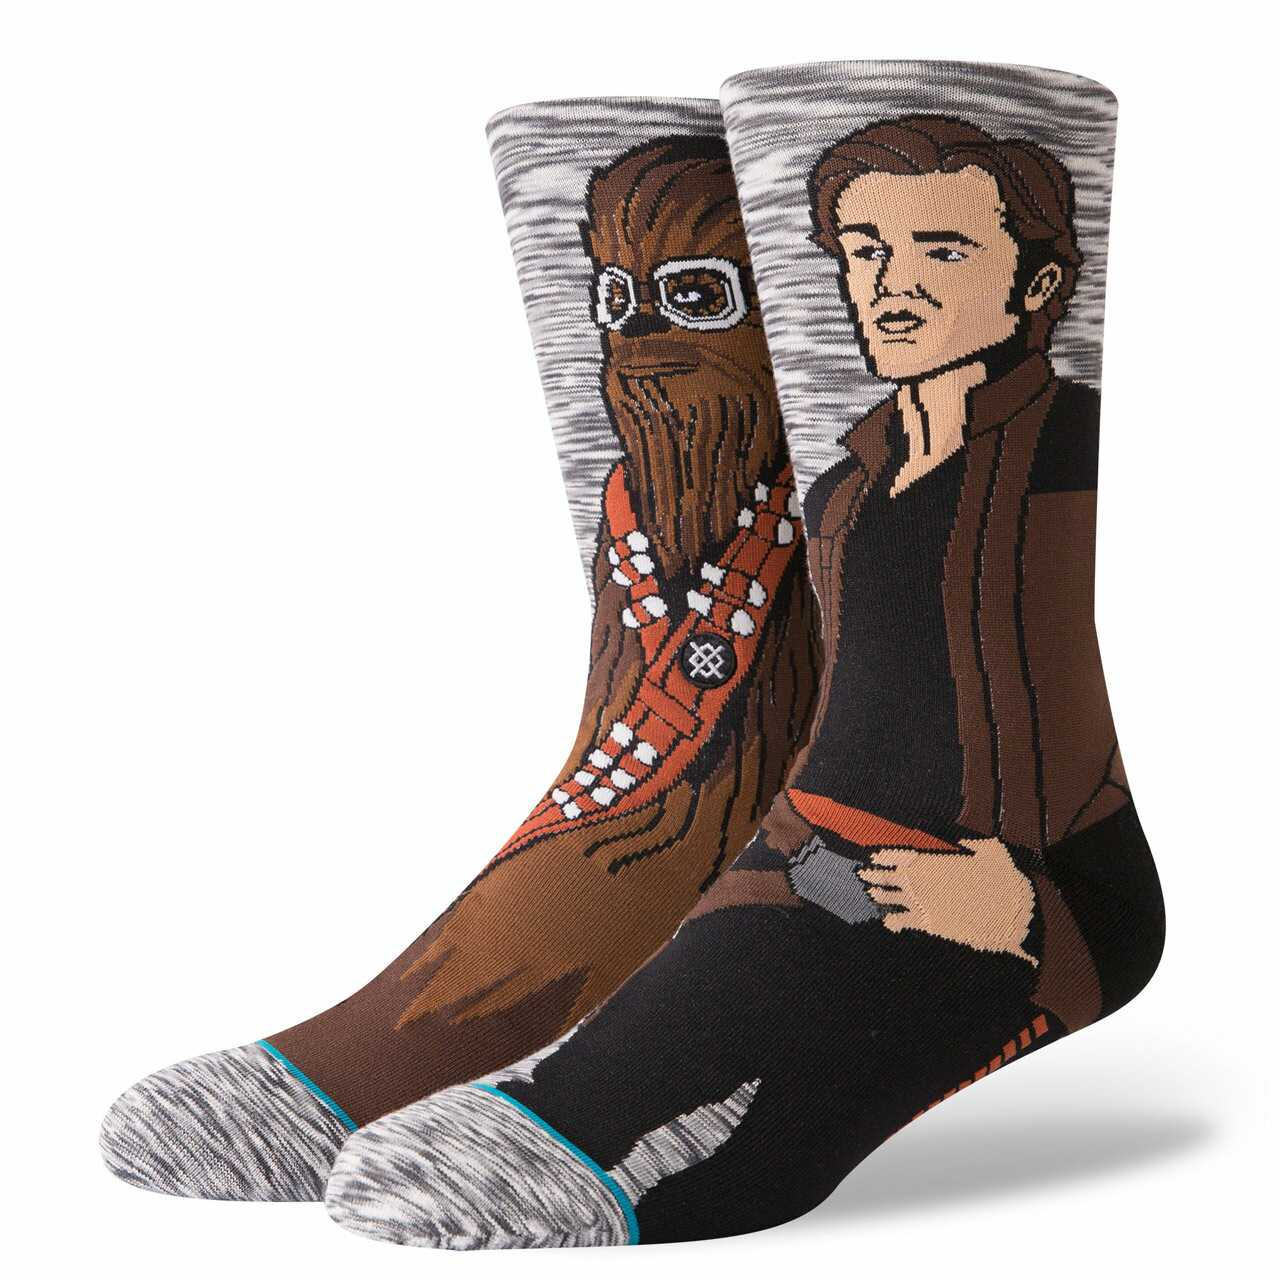 gray heather socks with han and chewie from star wars